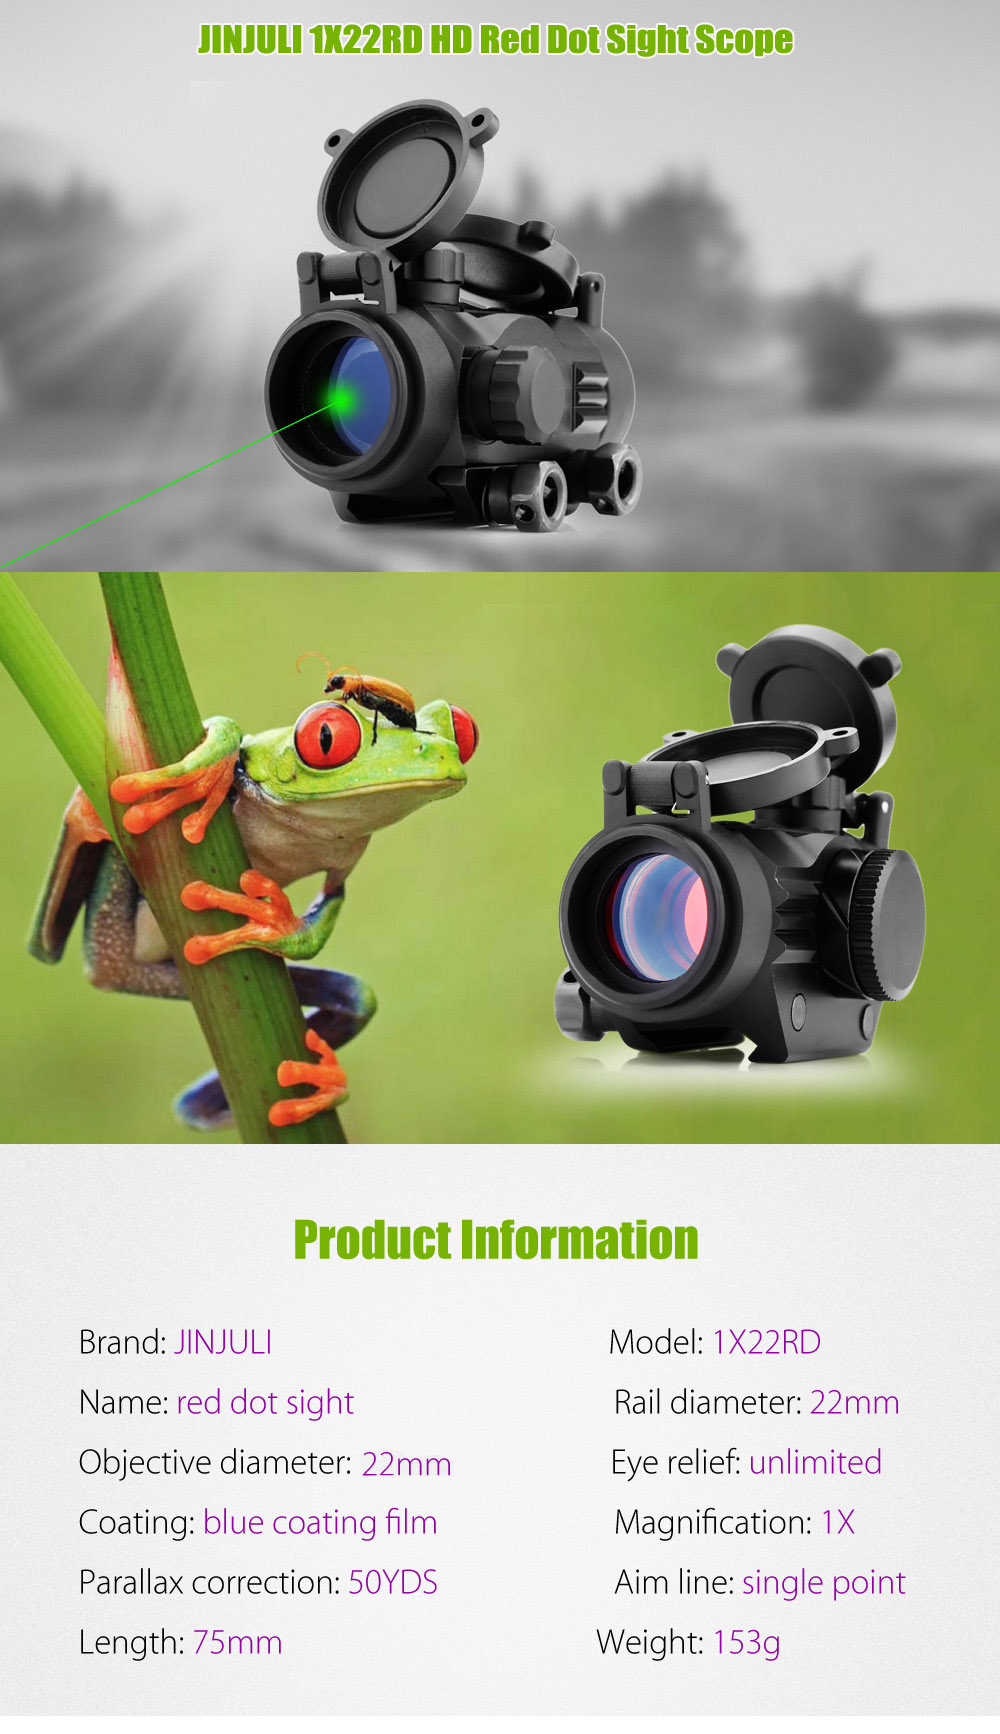 JINJULI 1X22RD HD Red Dot Sight Scope Tactical Telescope